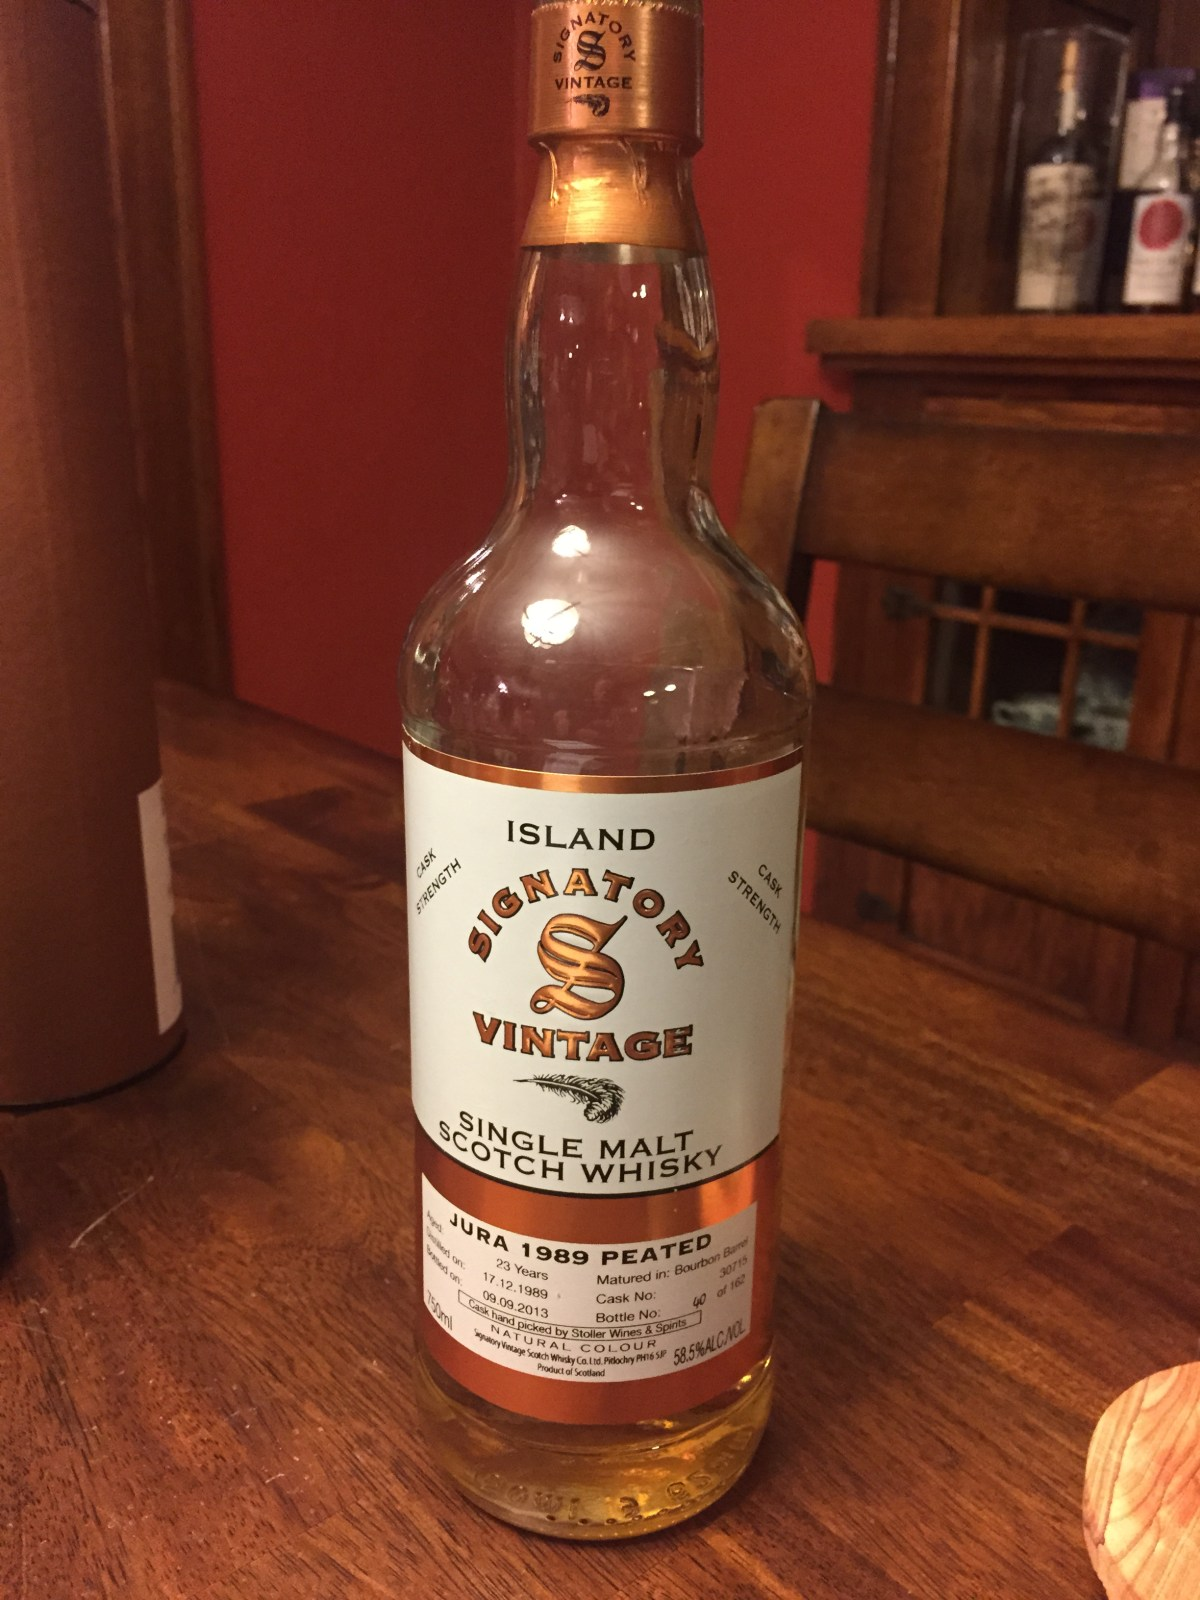 Jura 23 1989 Peated (Signatory Vintage cask 30715) Review